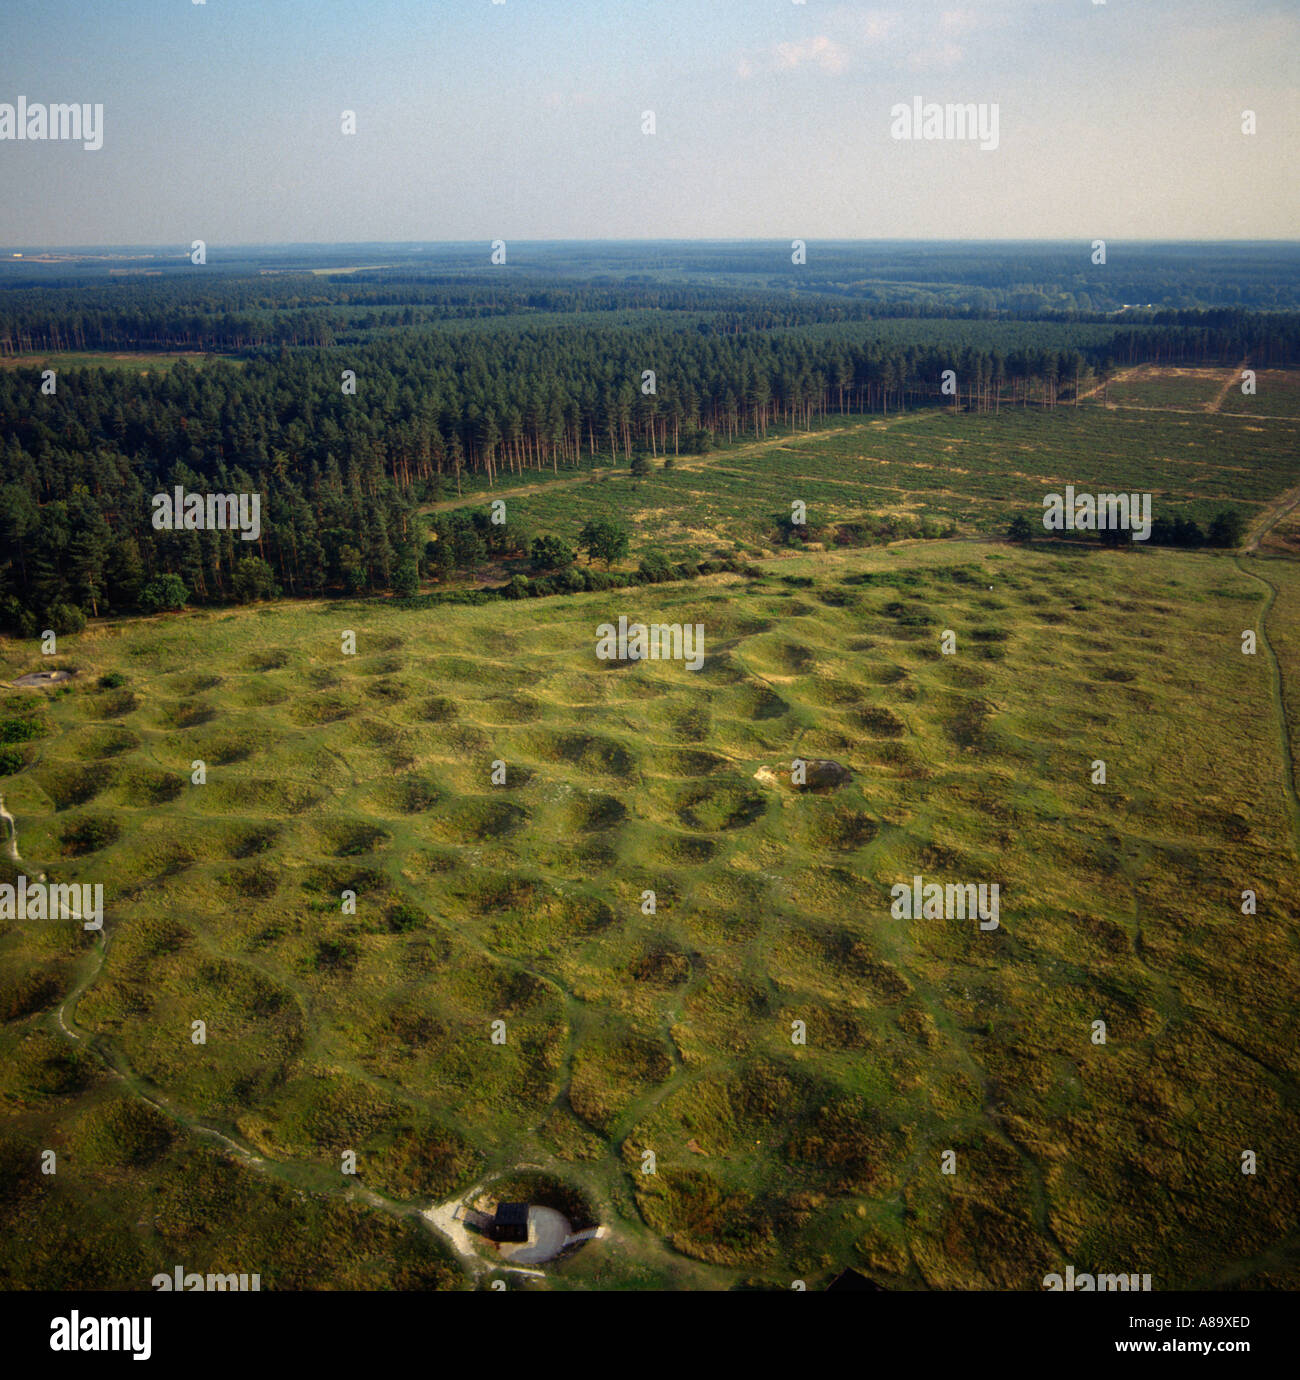 Grimes Graves neolithic flint mines Norfolk UK aerial view - Stock Image